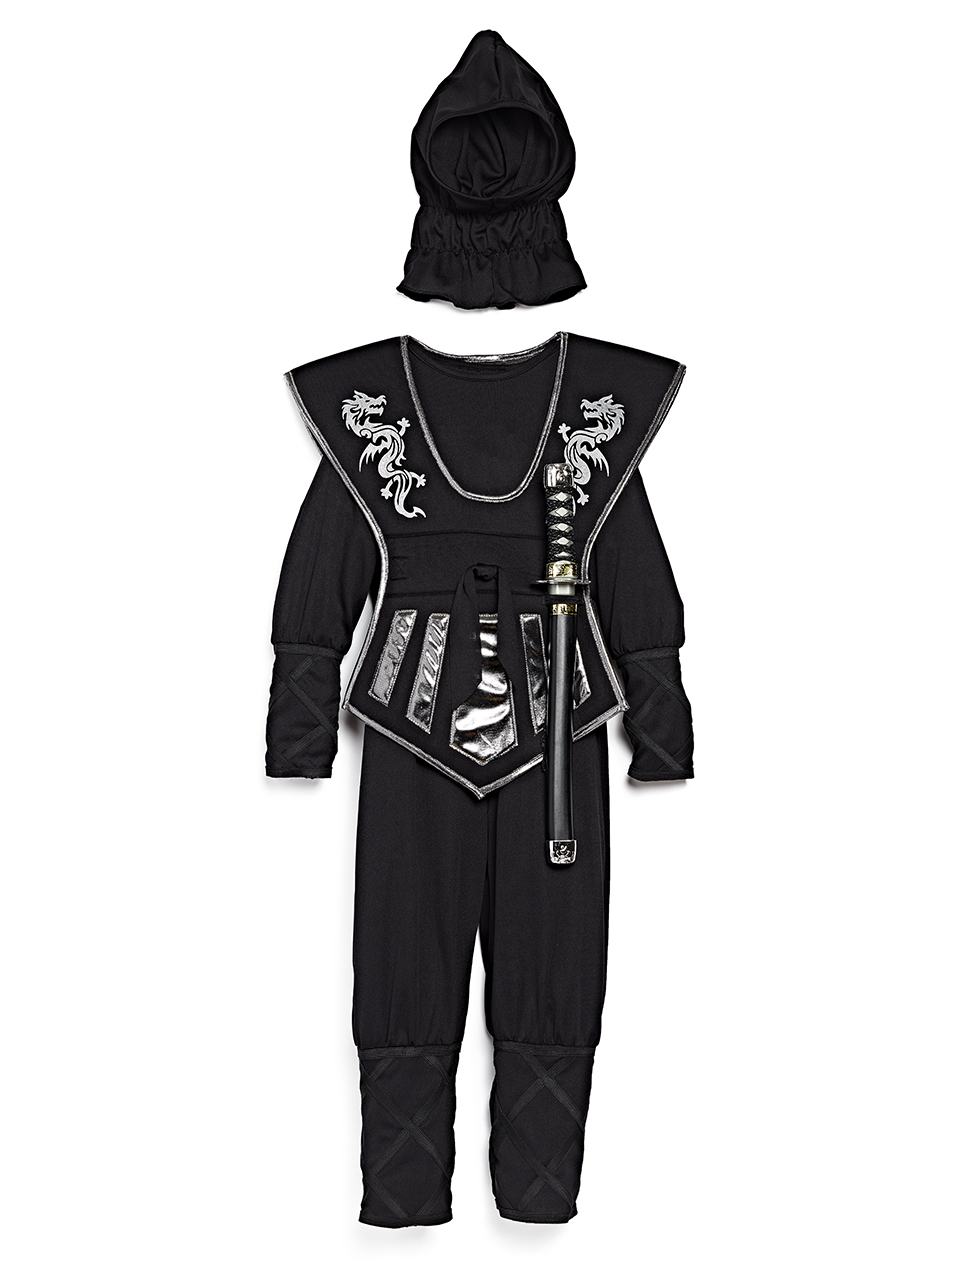 Get Unique Halloween Costumes For Kids At T J Maxx The